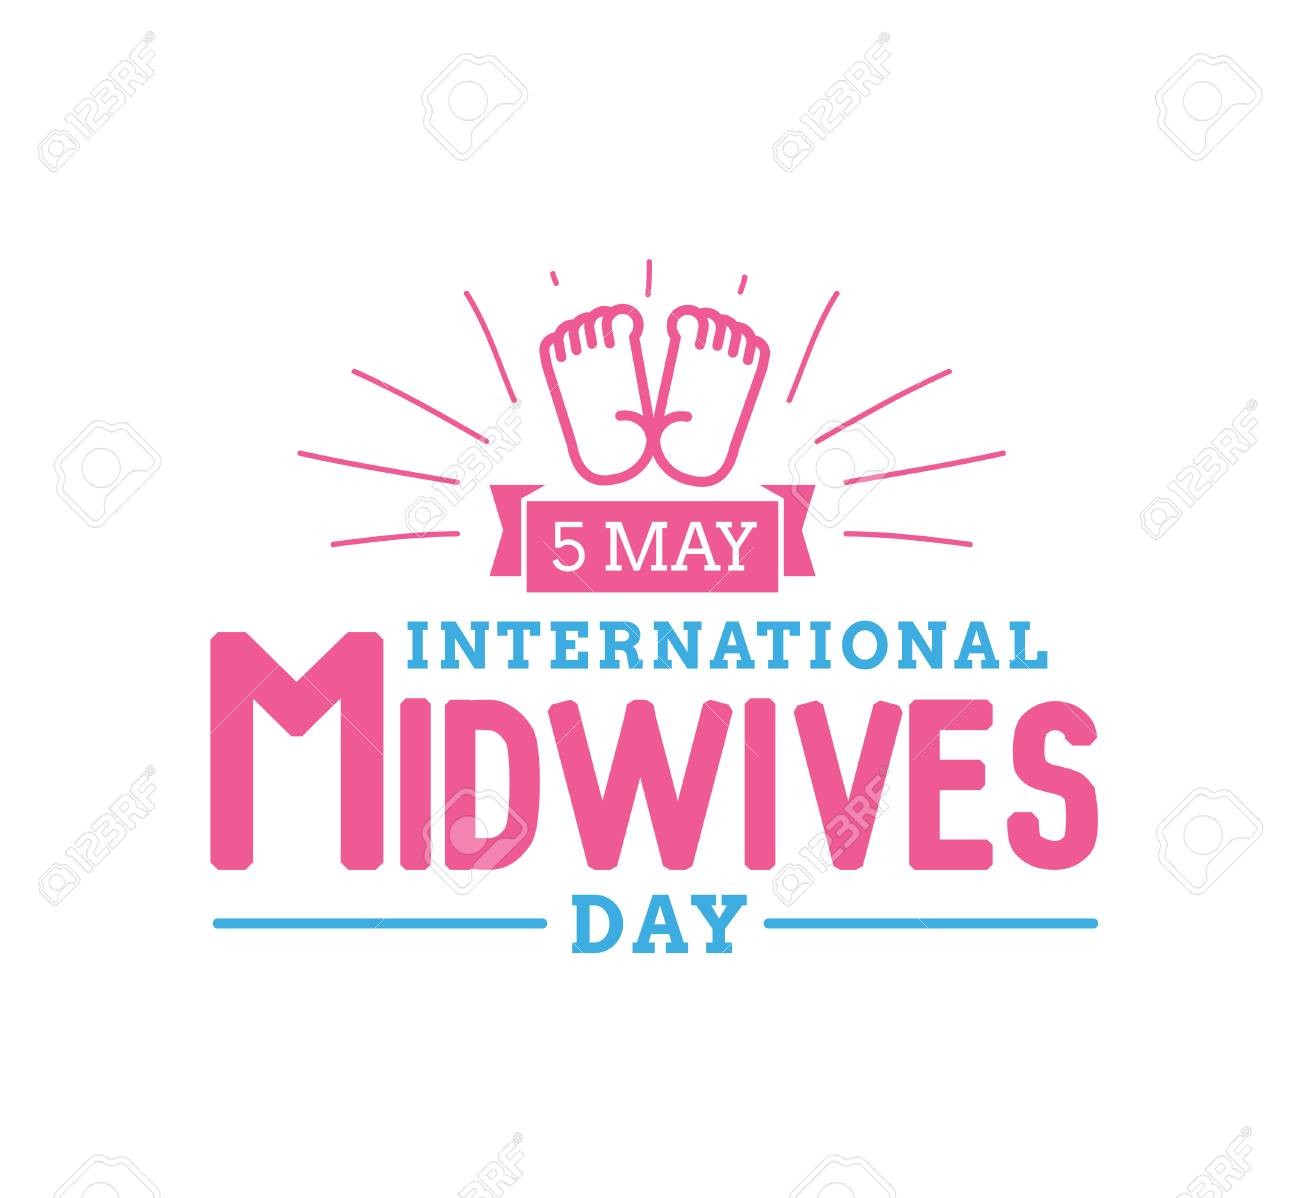 International Midwives Day 5 May Vector Typography For Greeting